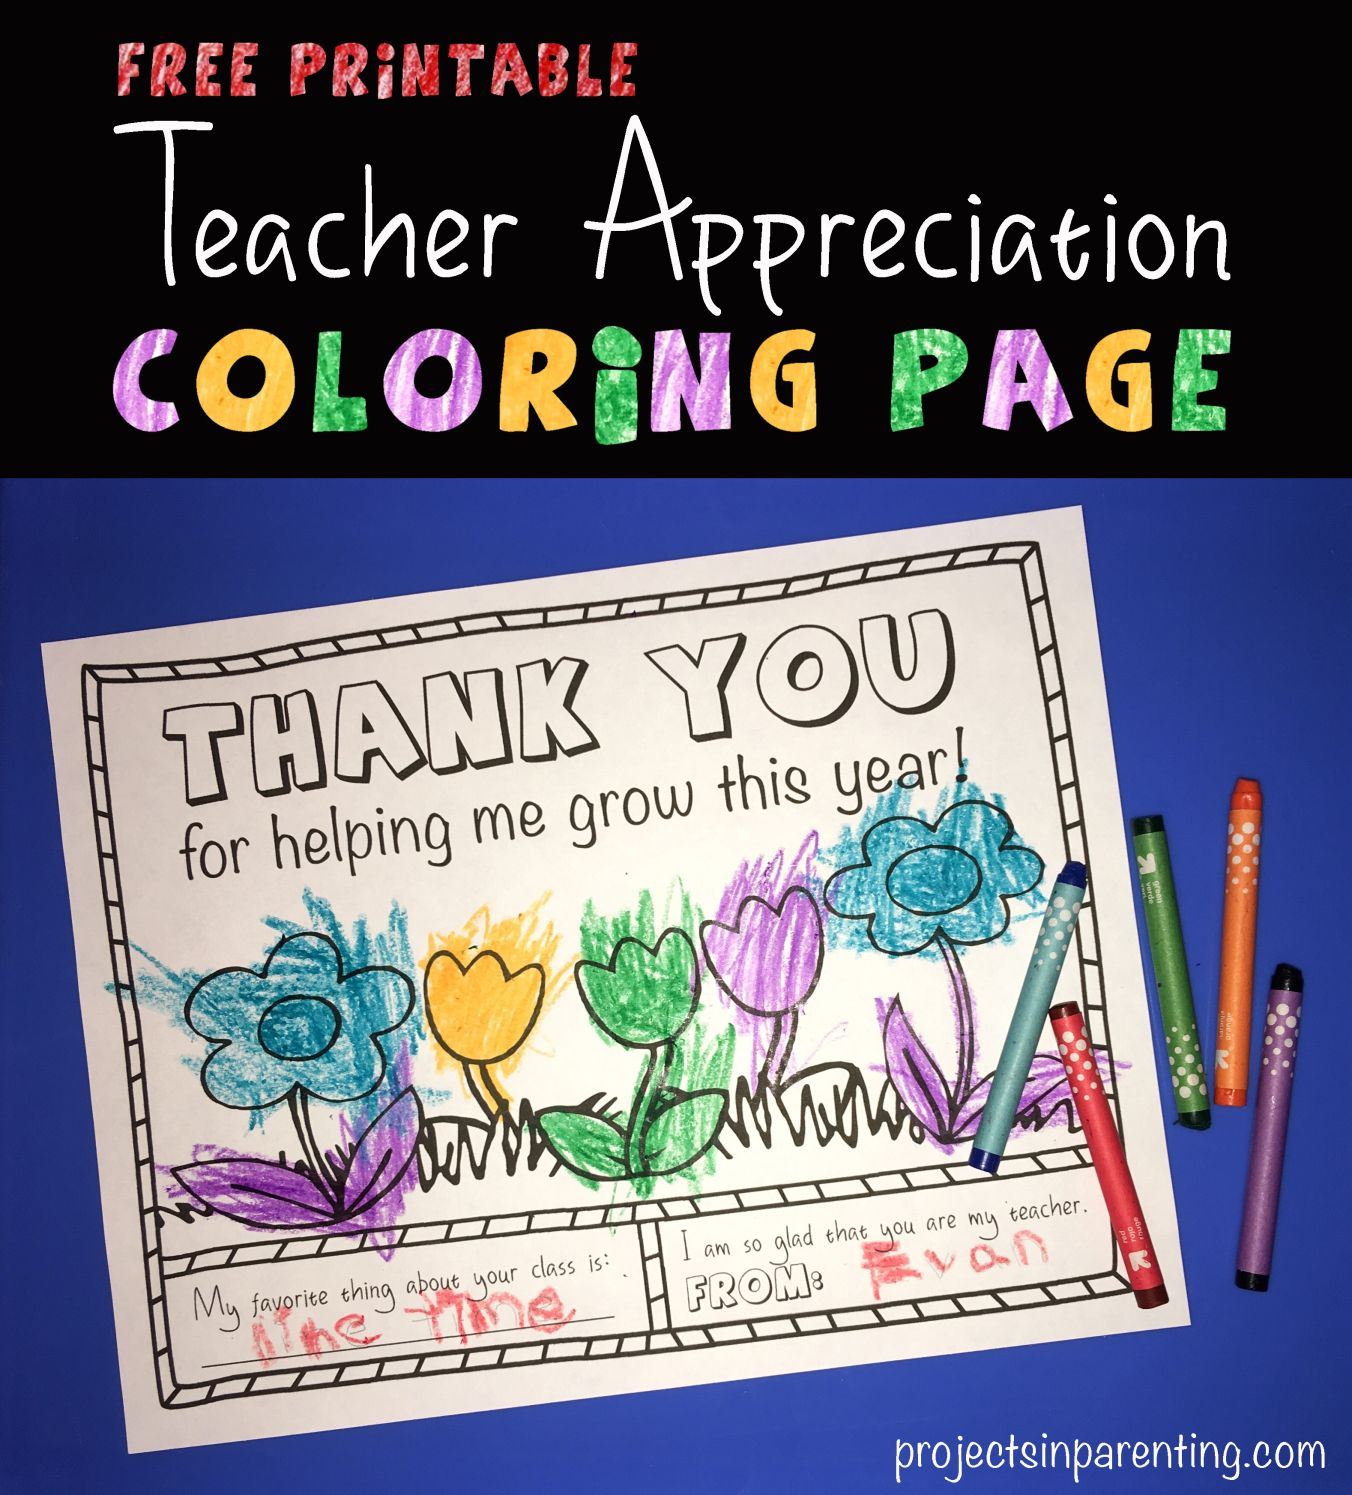 Teacher Appreciation Coloring Page / Thank you Gift - FREE Printable ...